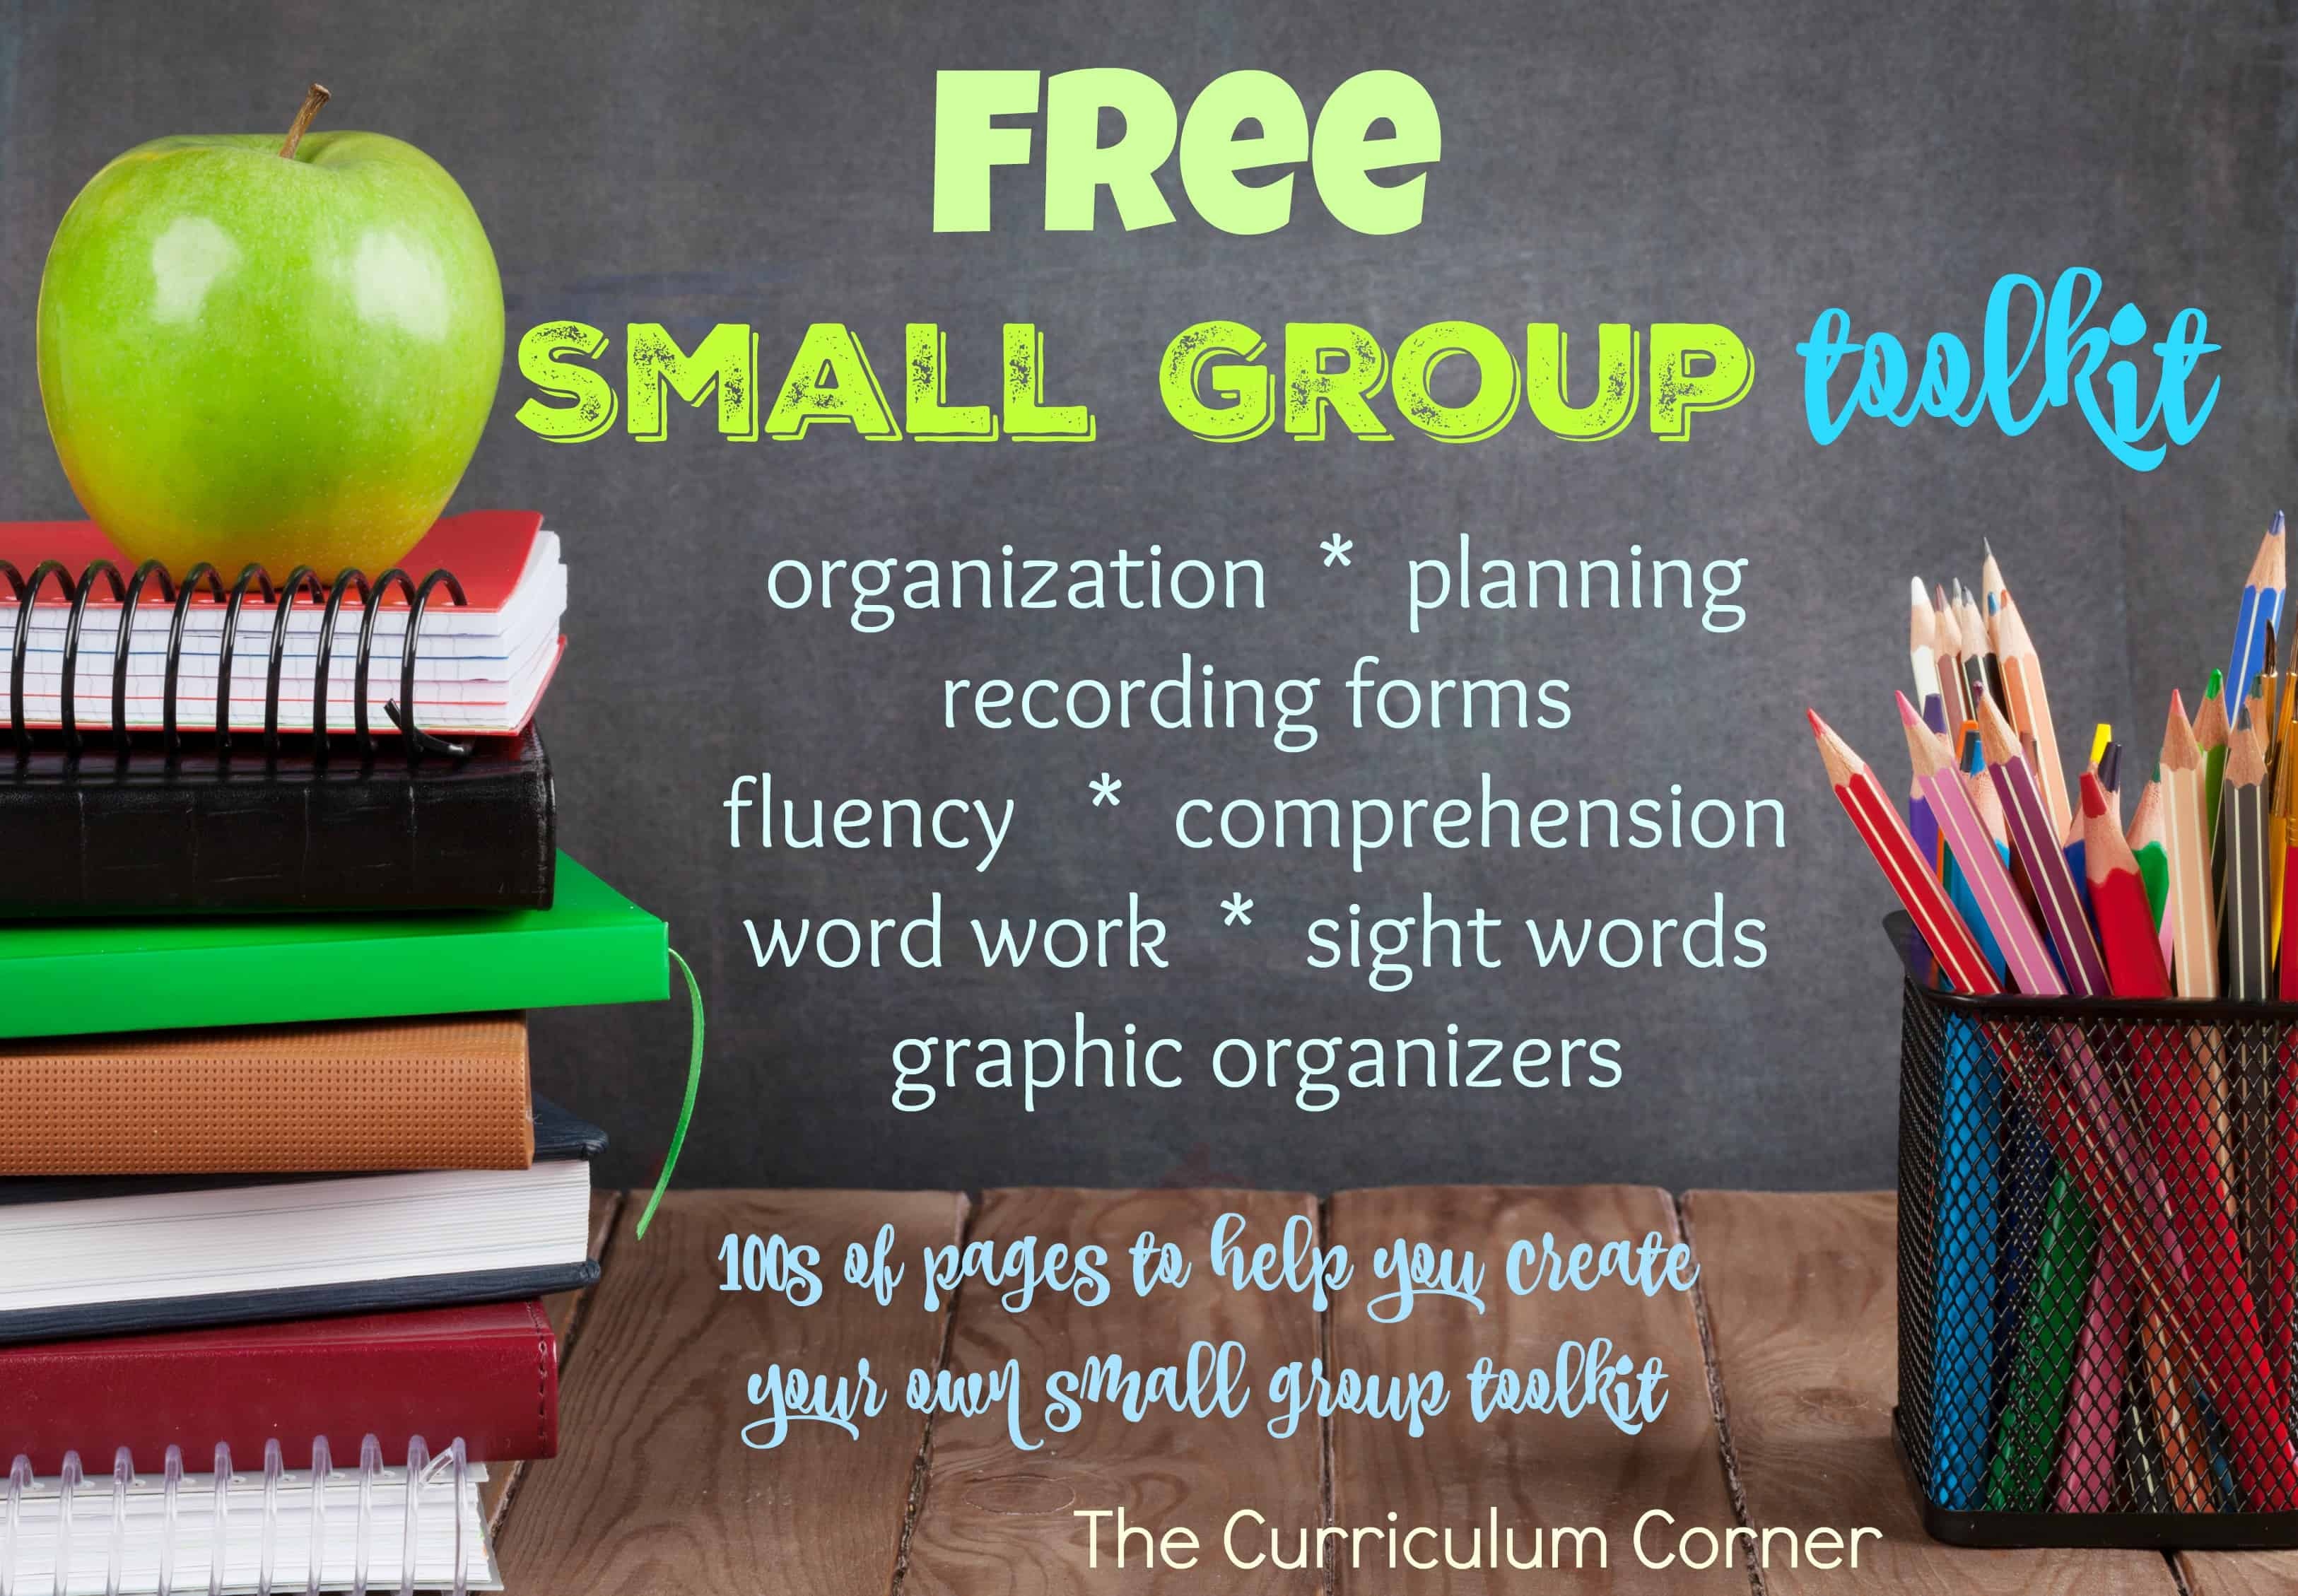 Free Small Group Curriculum 19